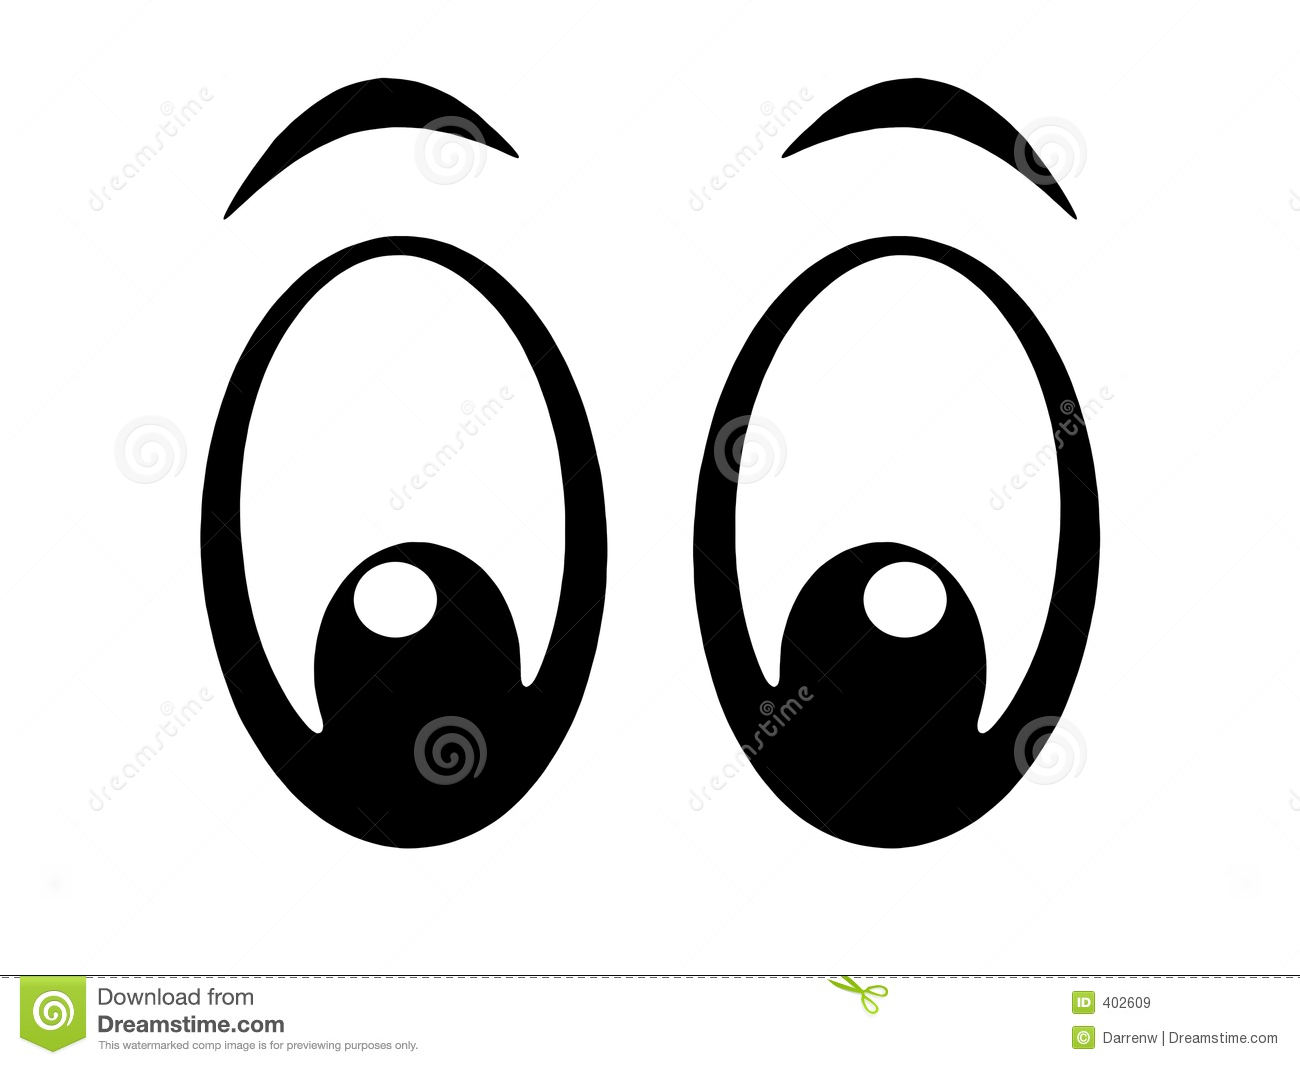 Cake clipart eye Clipart Eye eyes Black Art